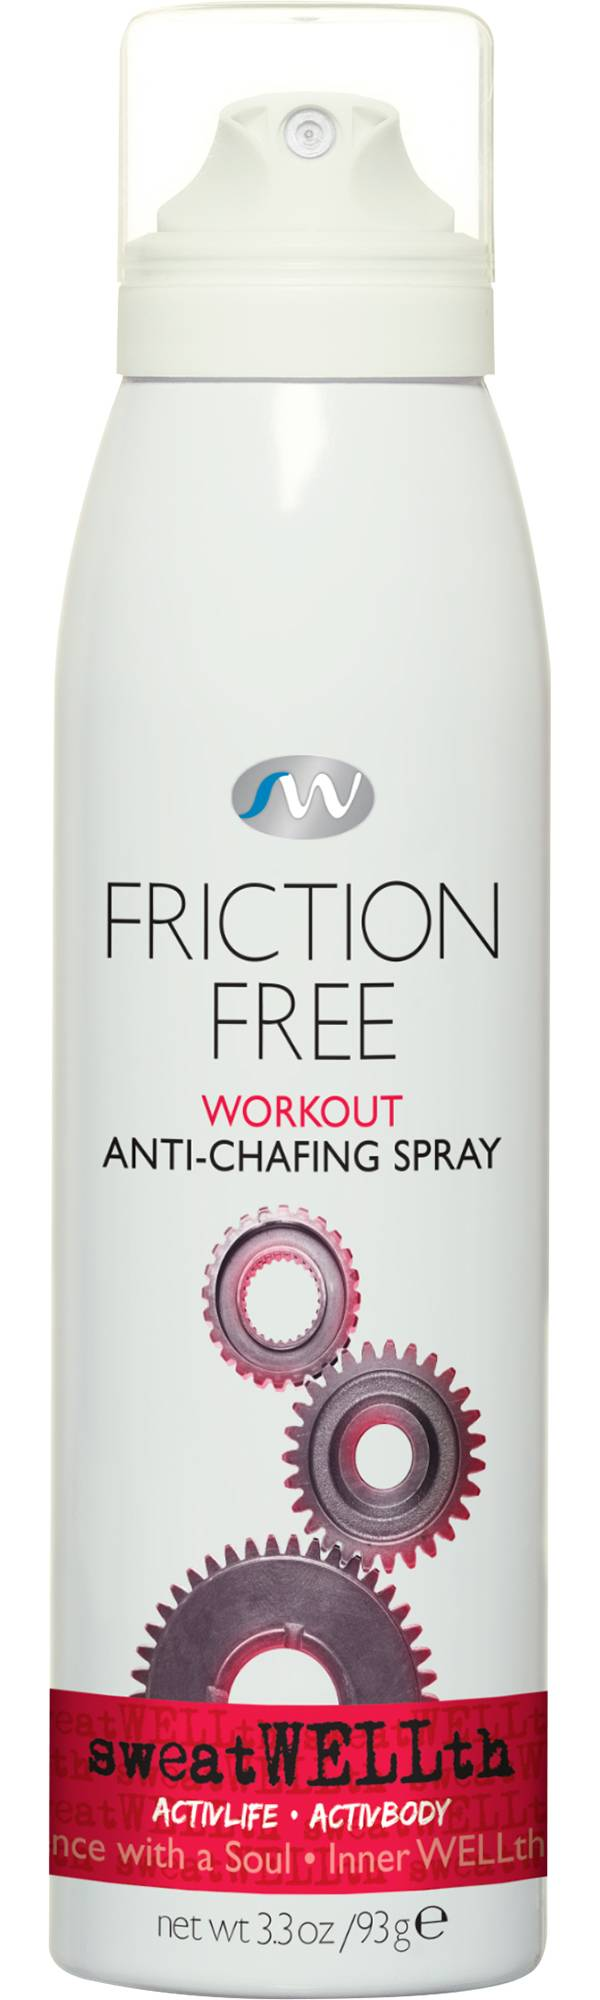 sweatWELLth Friction Free Anti-Chafing Spray product image